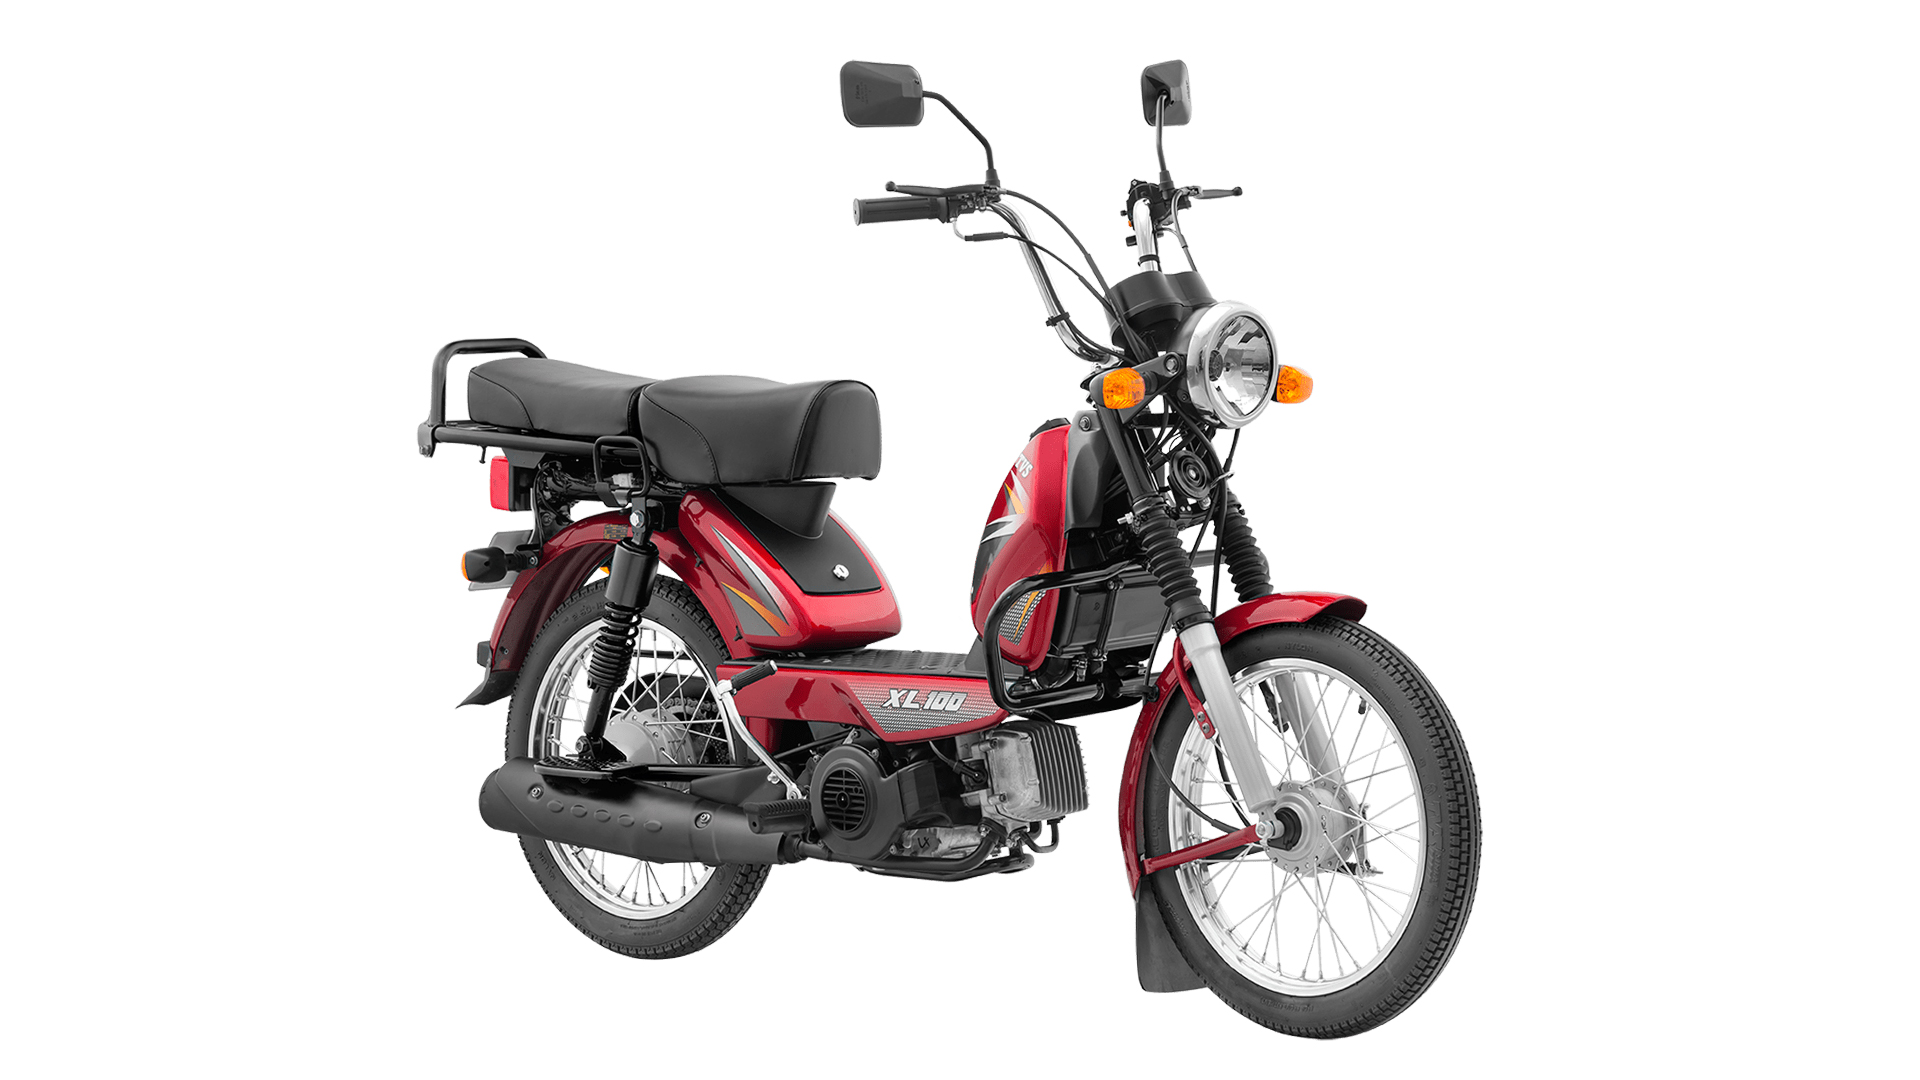 Tvs Xl100 2015 Price Mileage Reviews Specification